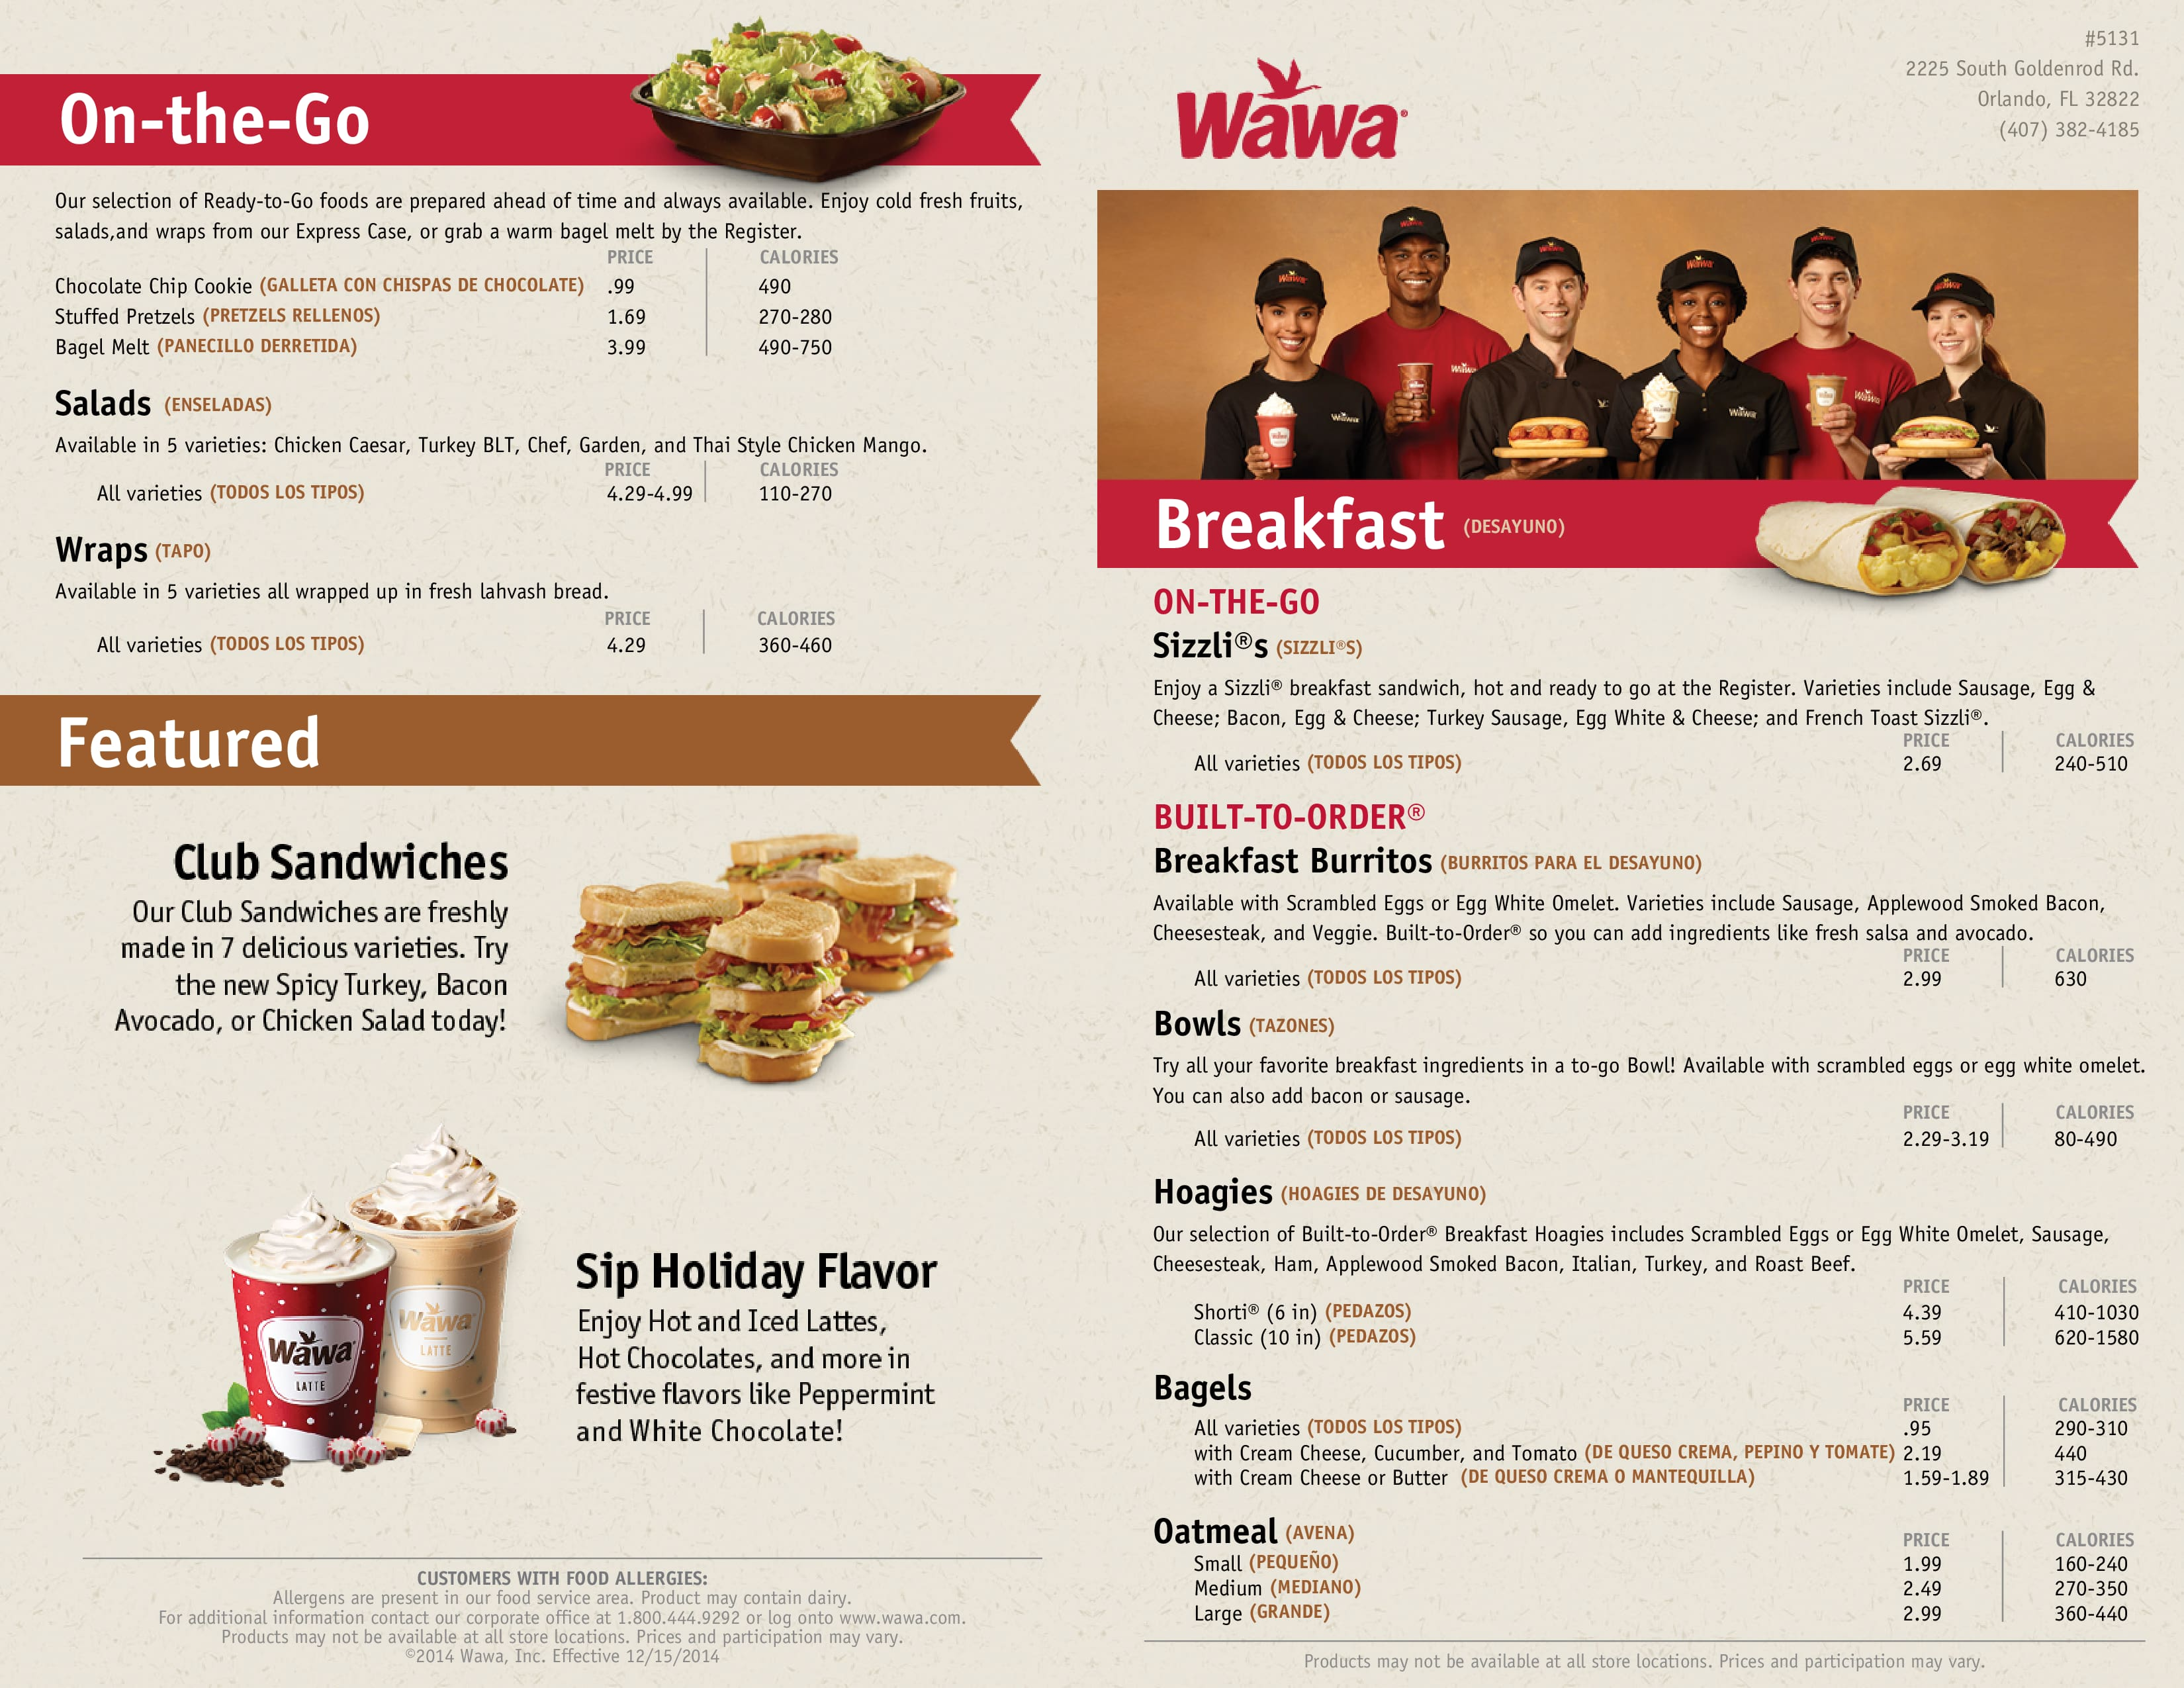 Wawa Menu, Menu for Wawa, East, Orlando - Urbanspoon/Zomato